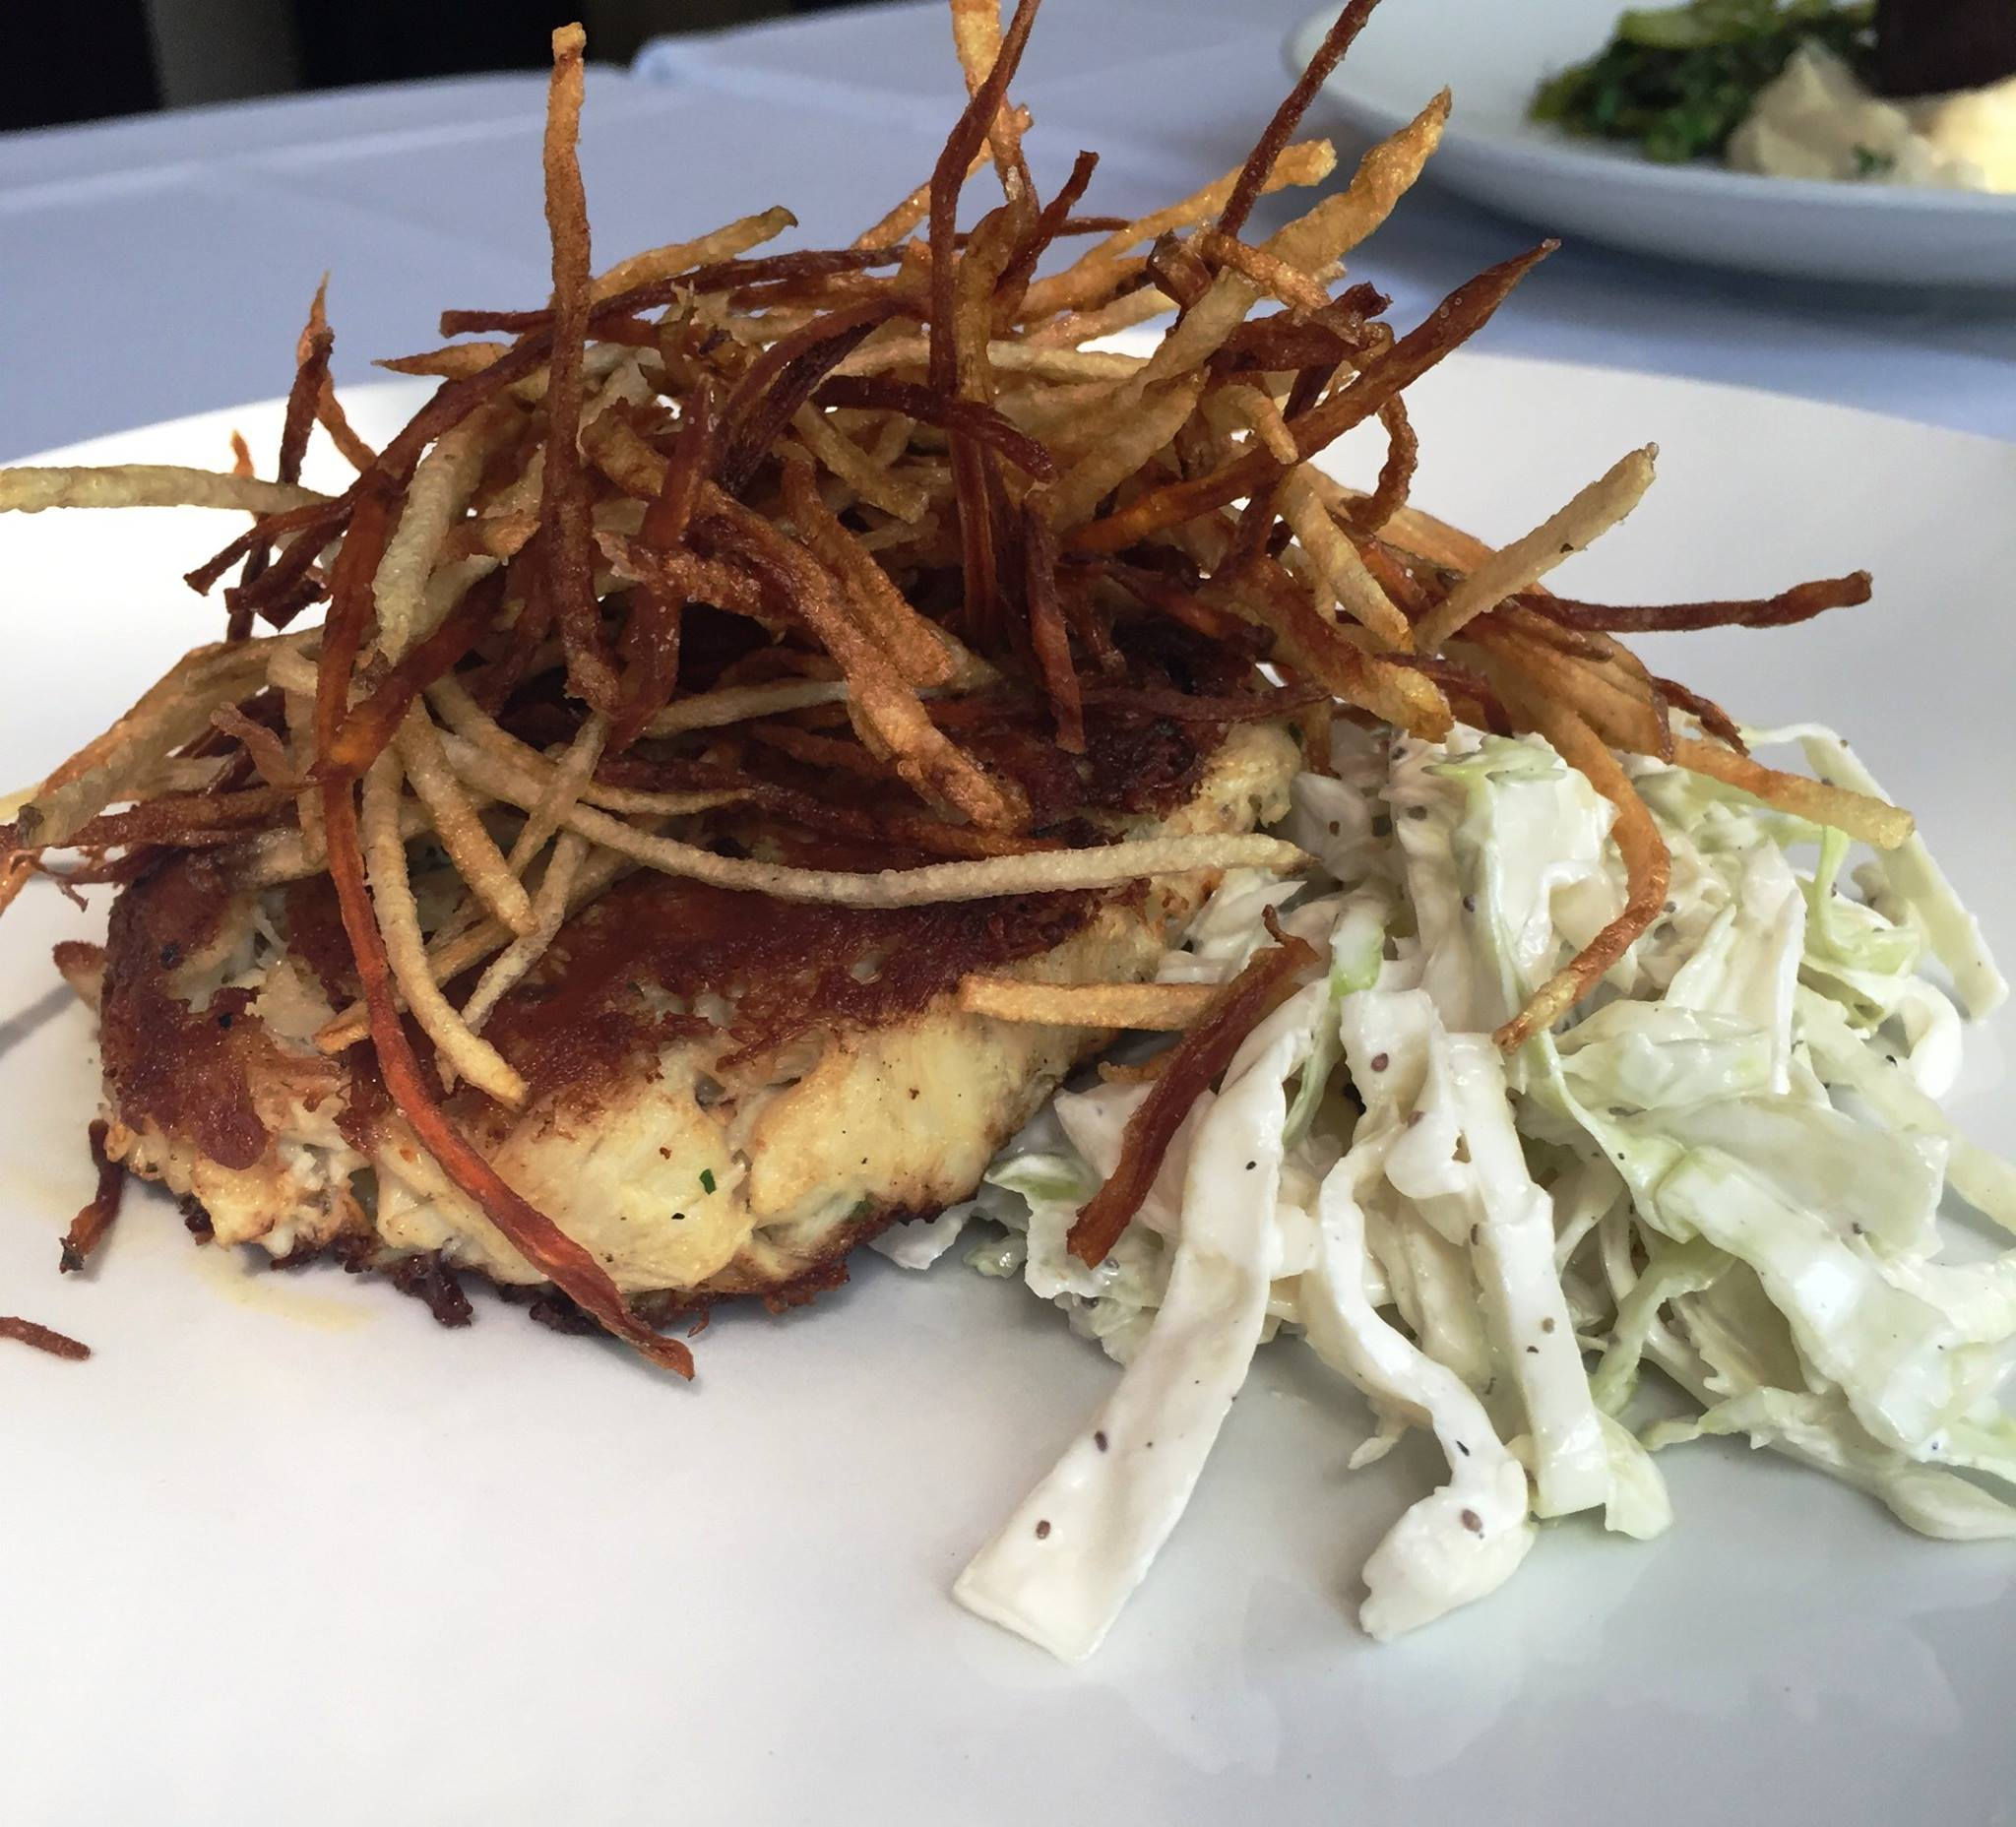 Pan seared jumbo lump crab cake | Courtesy of Julep's New Southern Cuisine